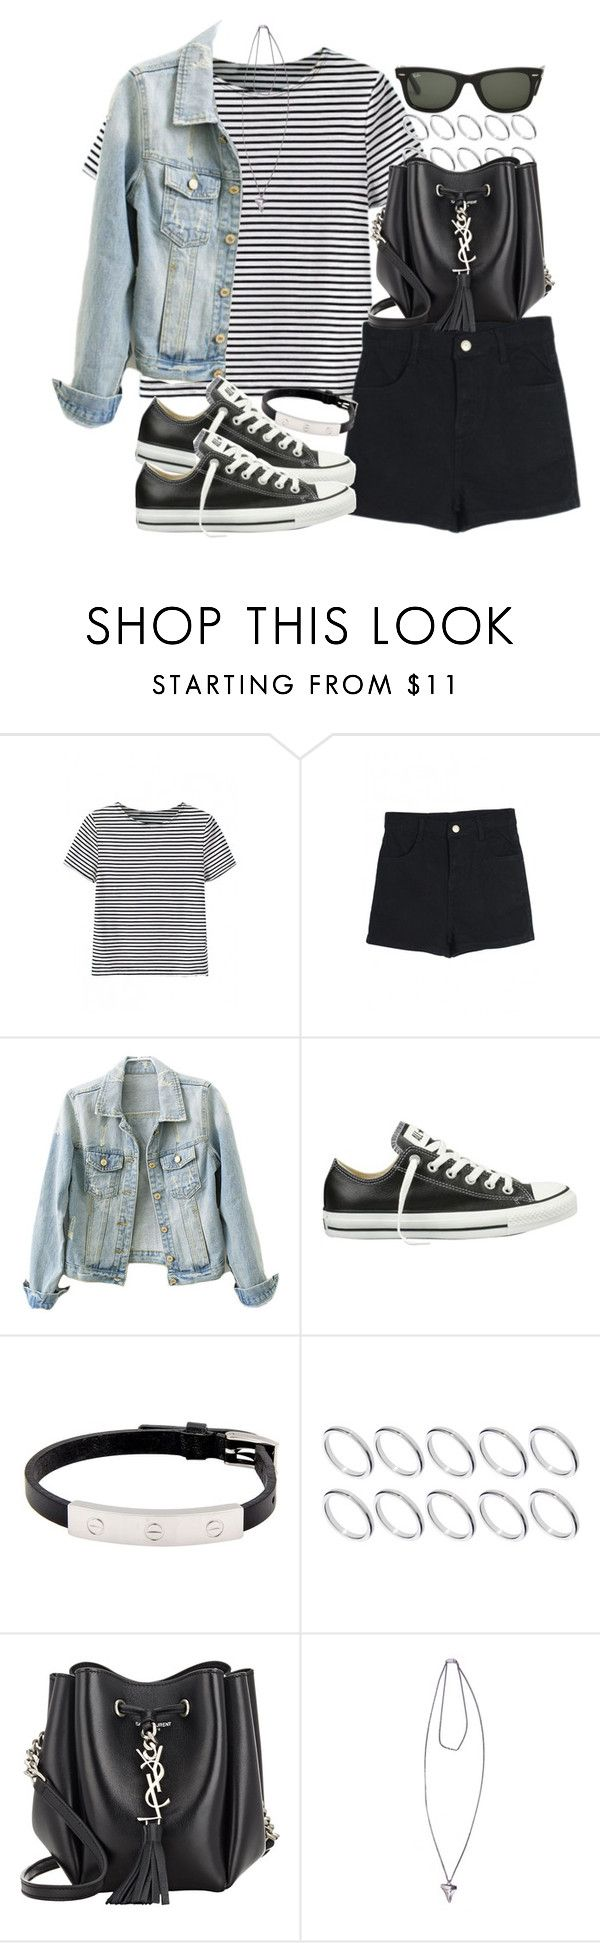 """Untitled #3423"" by hellomissapple on Polyvore featuring Converse, Cartier, ASOS, Yves Saint Laurent, Ray-Ban, Givenchy, women's clothing, women's fashion, women and female"